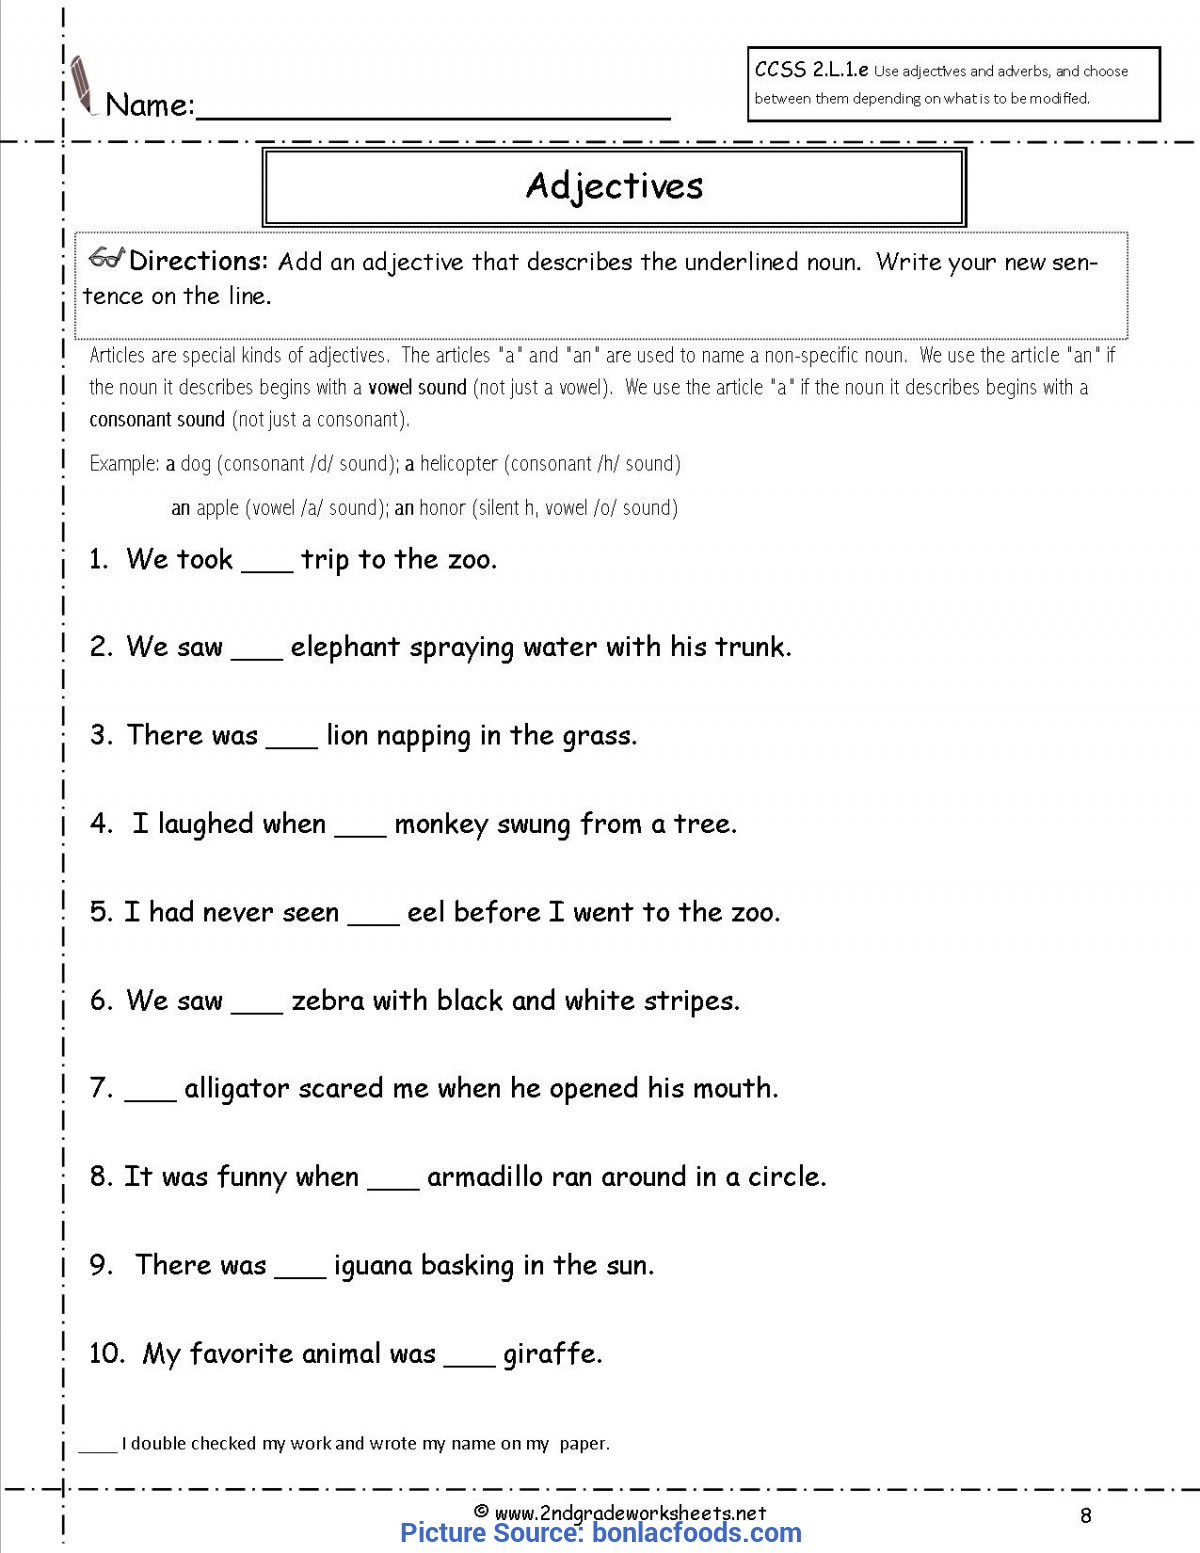 Free Printable Adjective Worksheets Valuable 2nd Grade Lesson Plans Adjectives Worksheets for